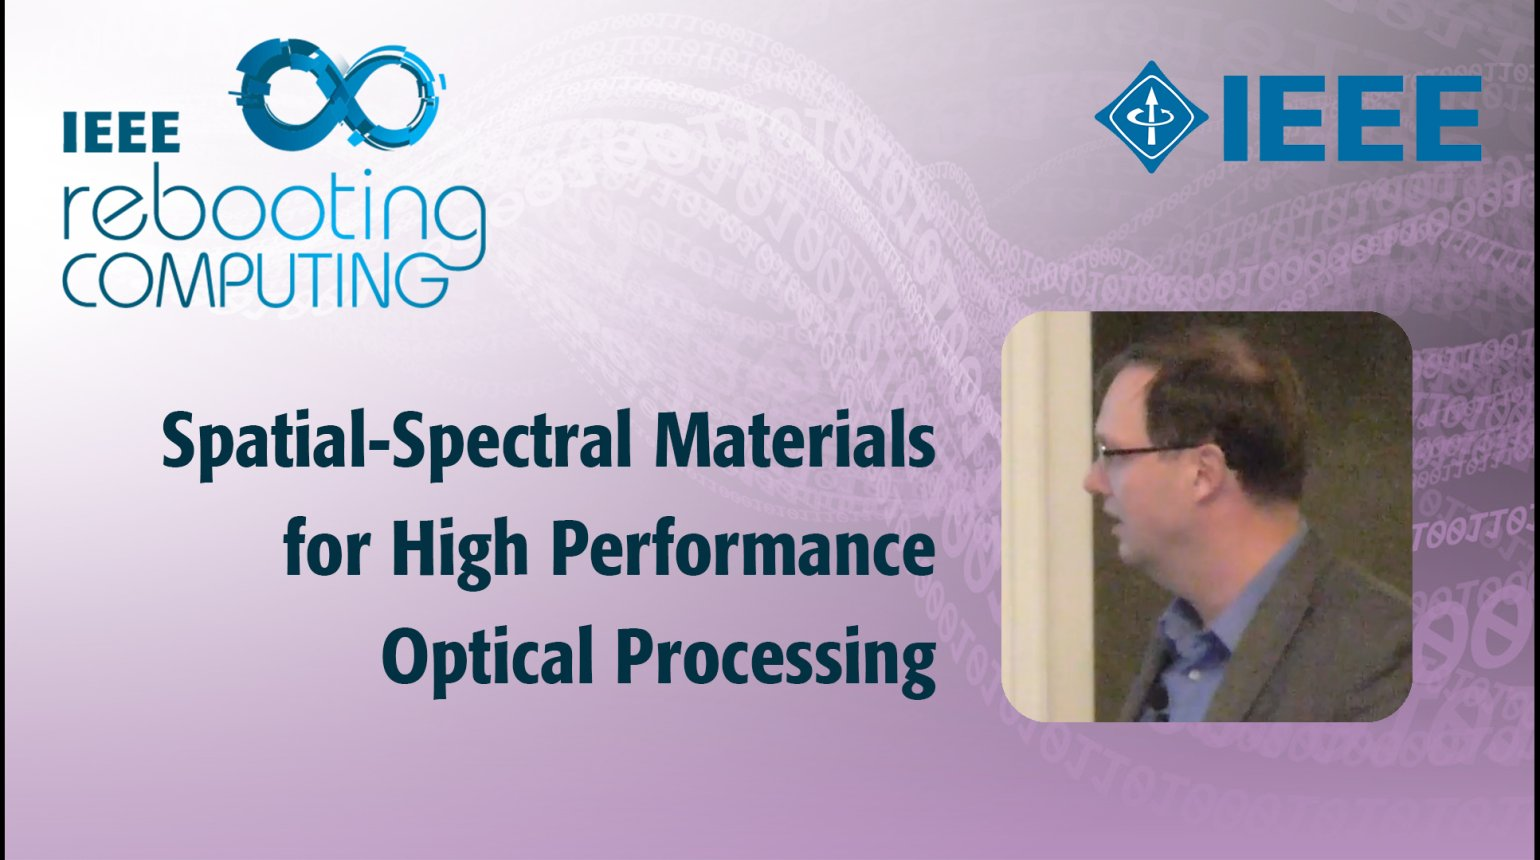 Spatial-Spectral Materials for High Performance Optical Processing - IEEE Rebooting Computing 2017